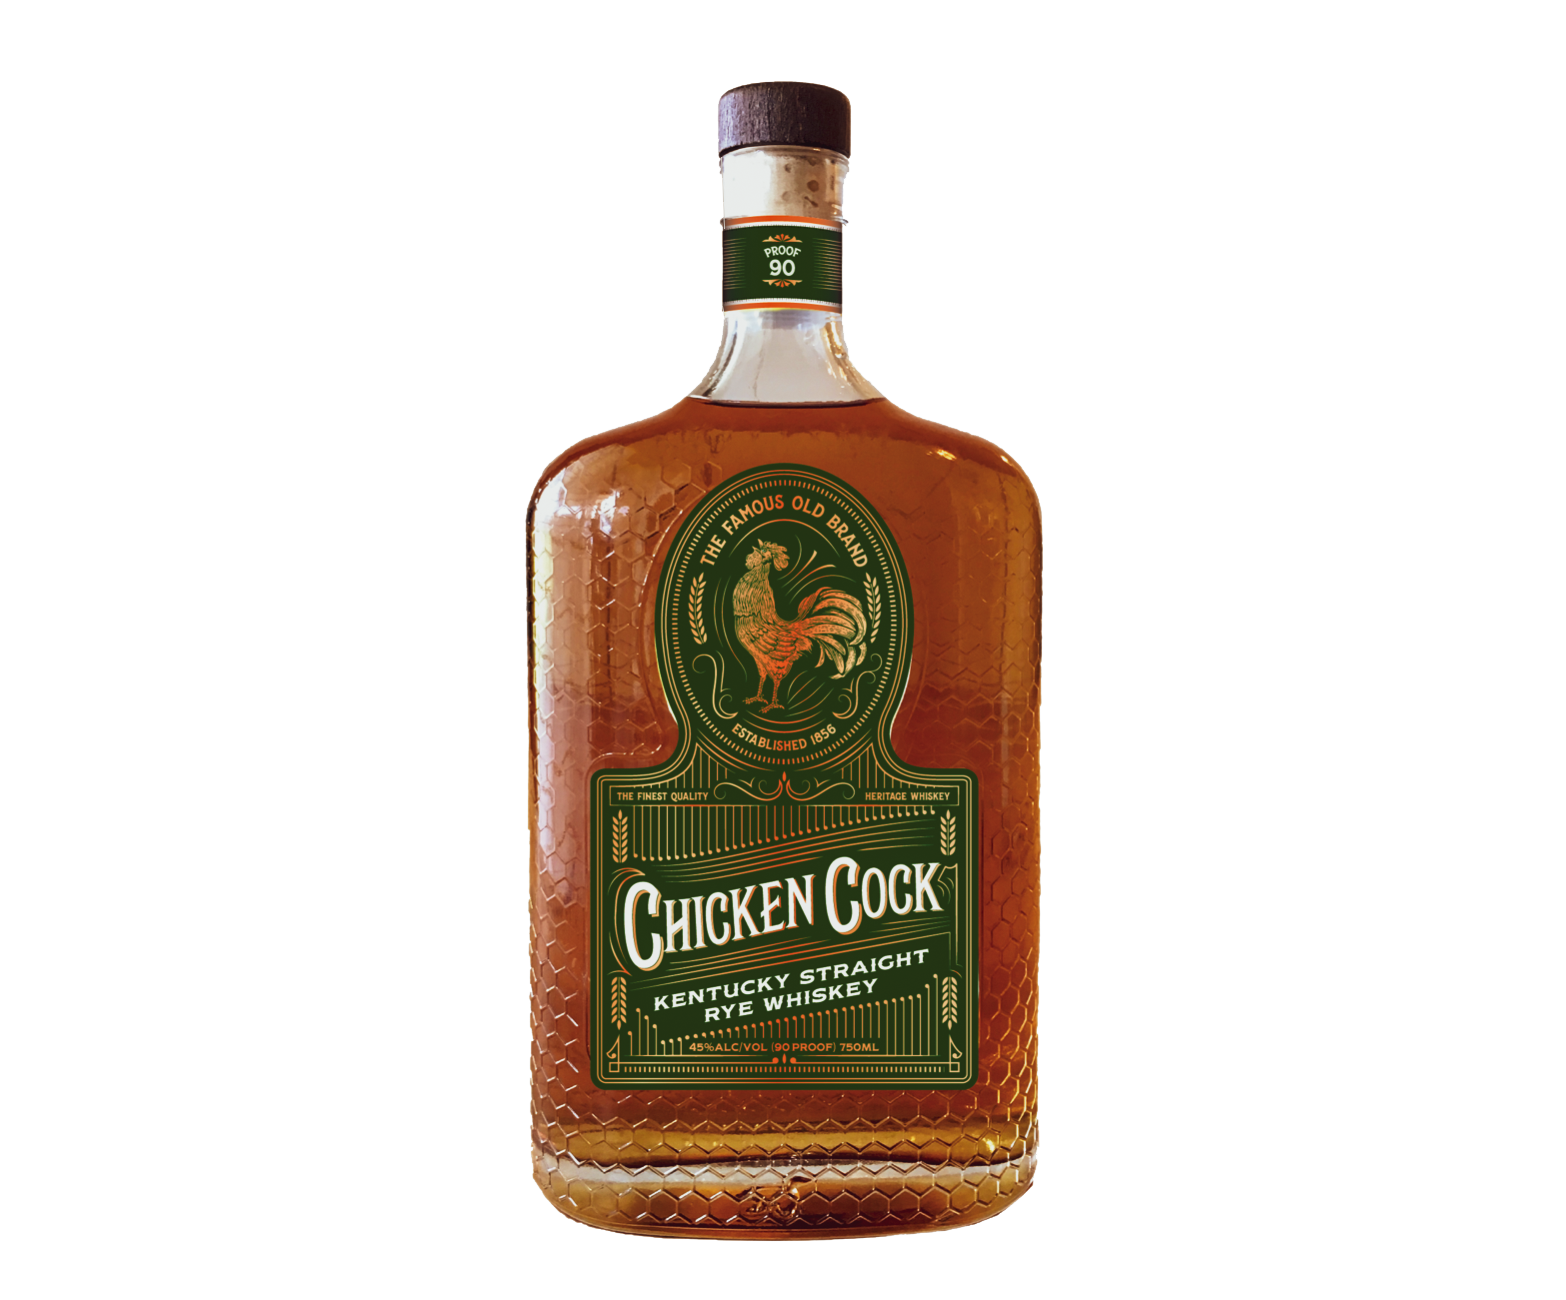 chicken cock rye whiskey